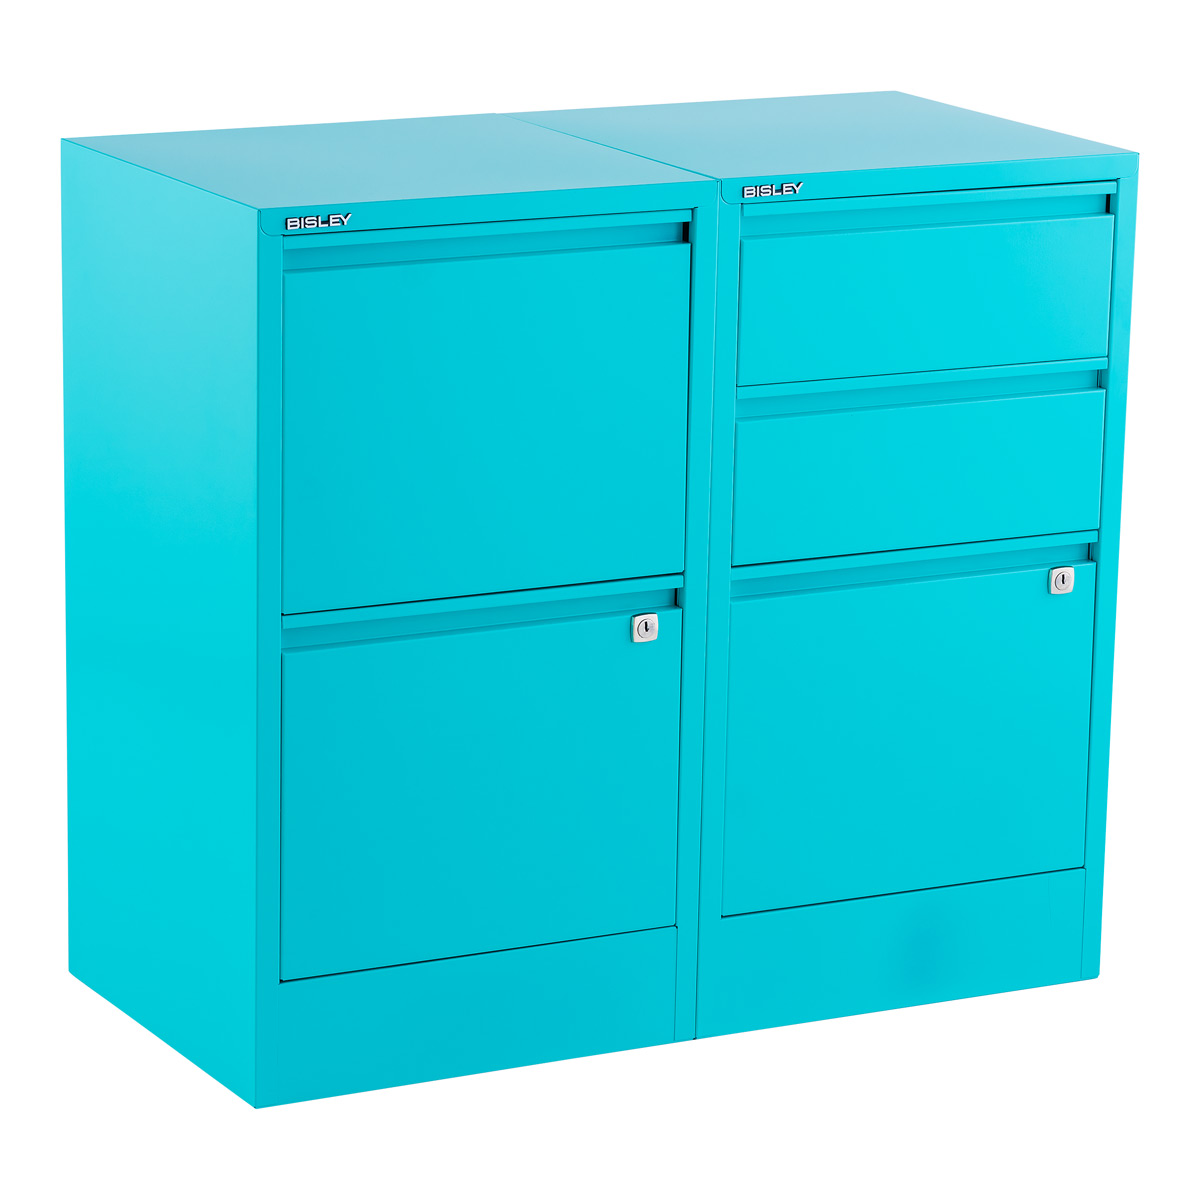 File cabinet png Document Storage Bisley Aqua 2 3drawer Locking Filing Cabinets The Container Store Bisley Aqua 2 3drawer Locking Filing Cabinets The Container Store